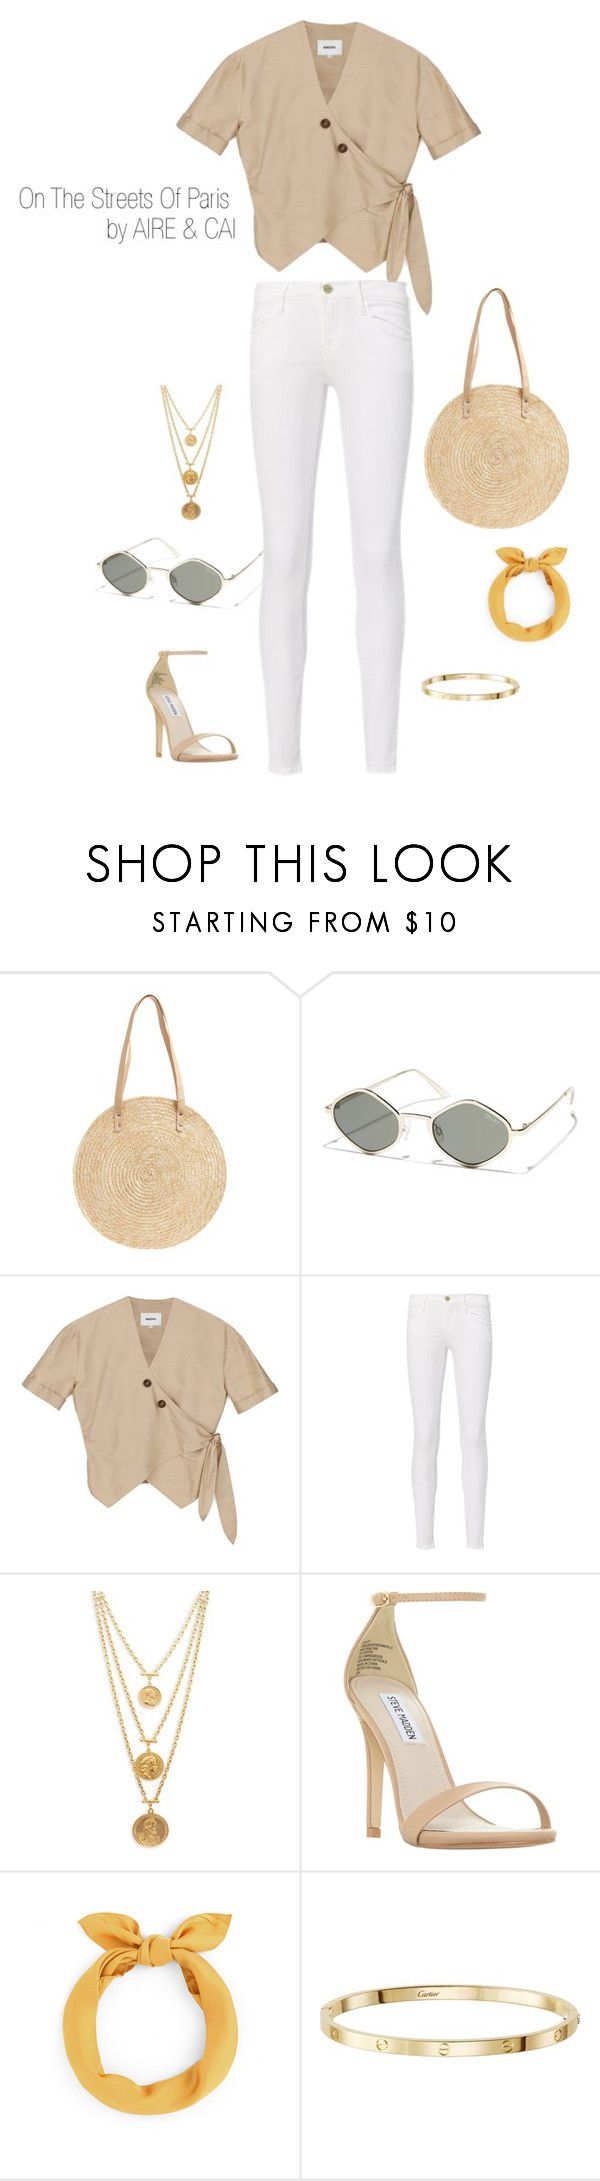 """""""Paris"""" by aireandcaimail on Polyvore featuring BP., Quay, Frame, Ben-Amun and Steve Madden"""